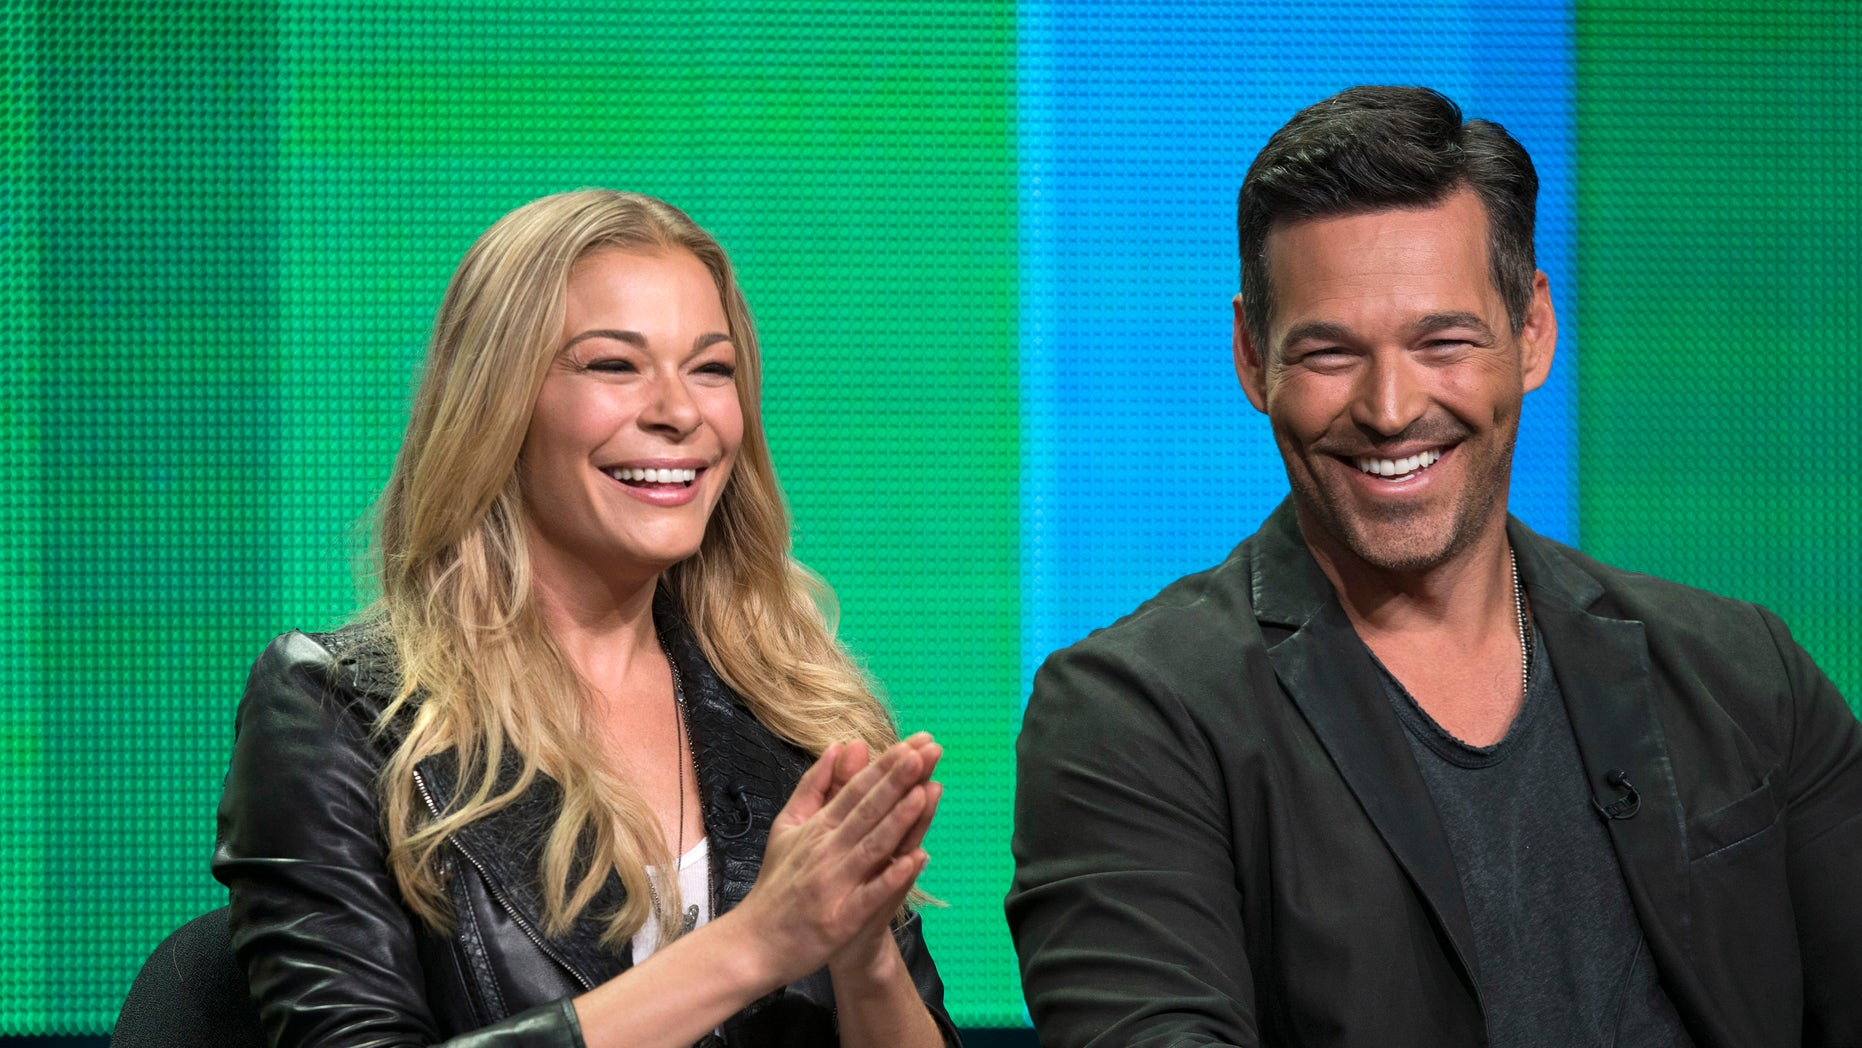 """July 11, 2014. LeAnn Rimes and her husband Eddie Cibrian attend a panel for the VH1 television series """"LeAnn & Eddie"""" during the Television Critics Association Cable Summer Press Tour in Beverly Hills, California."""